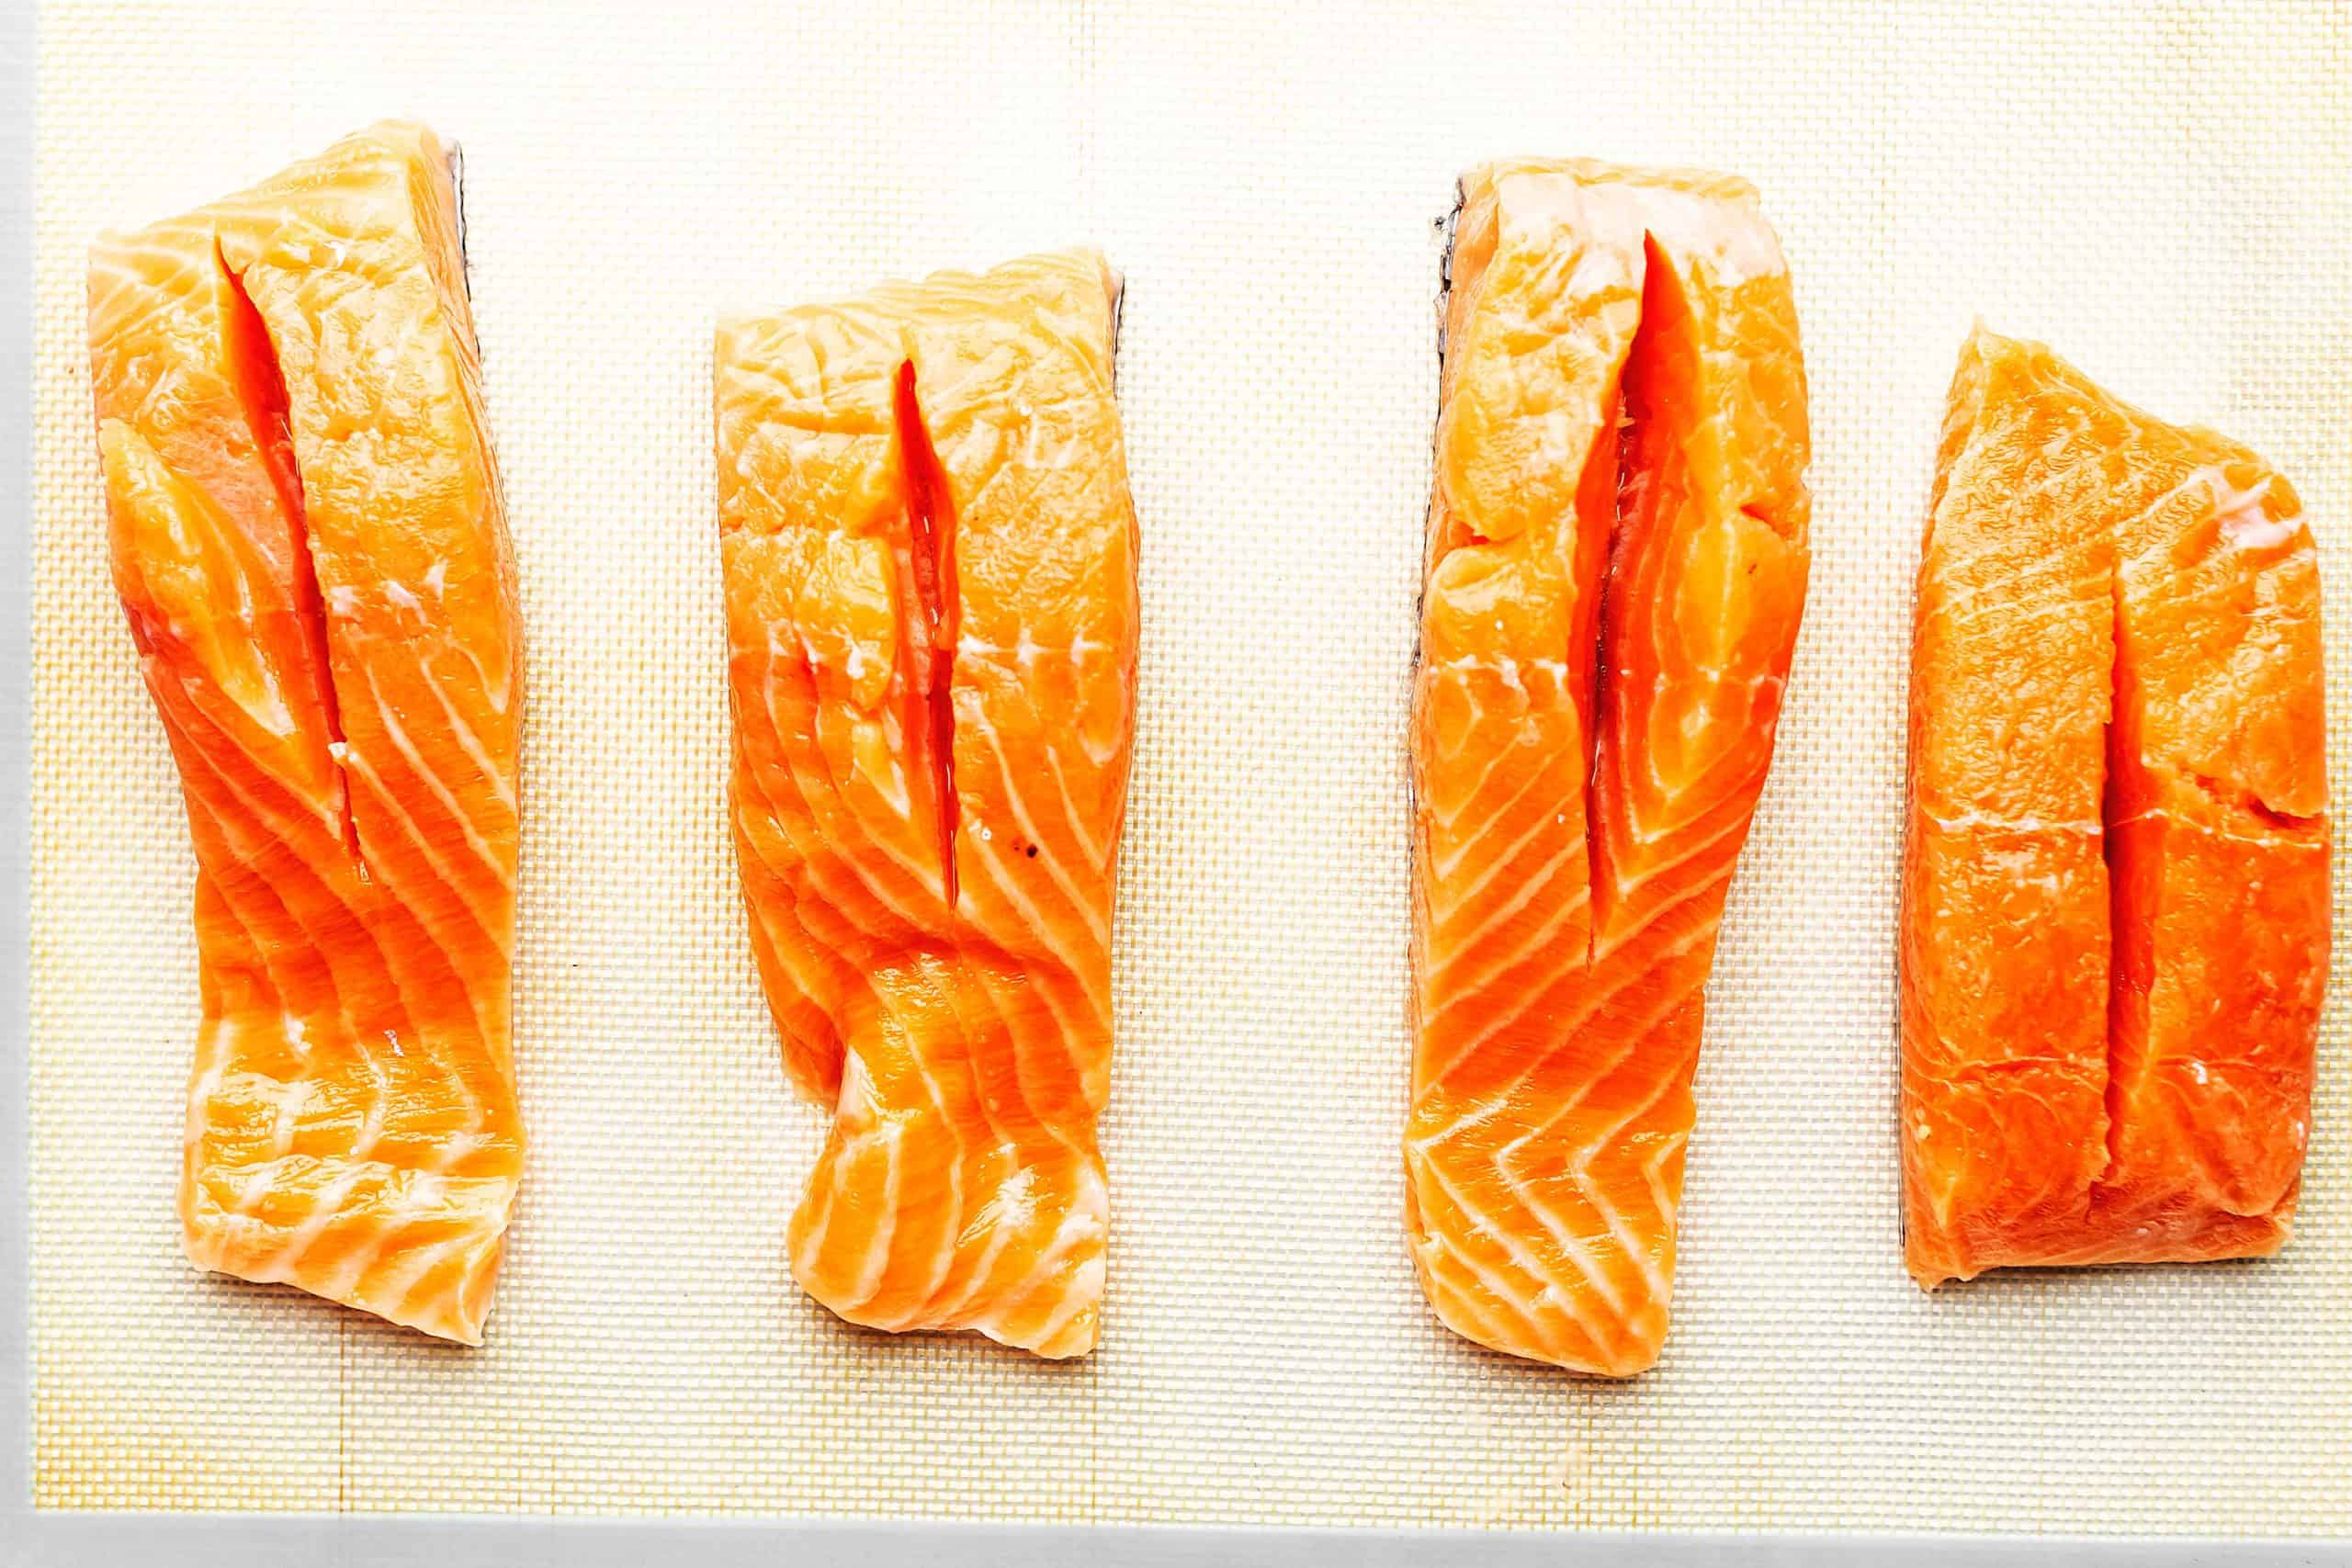 slit cut in salmon filets